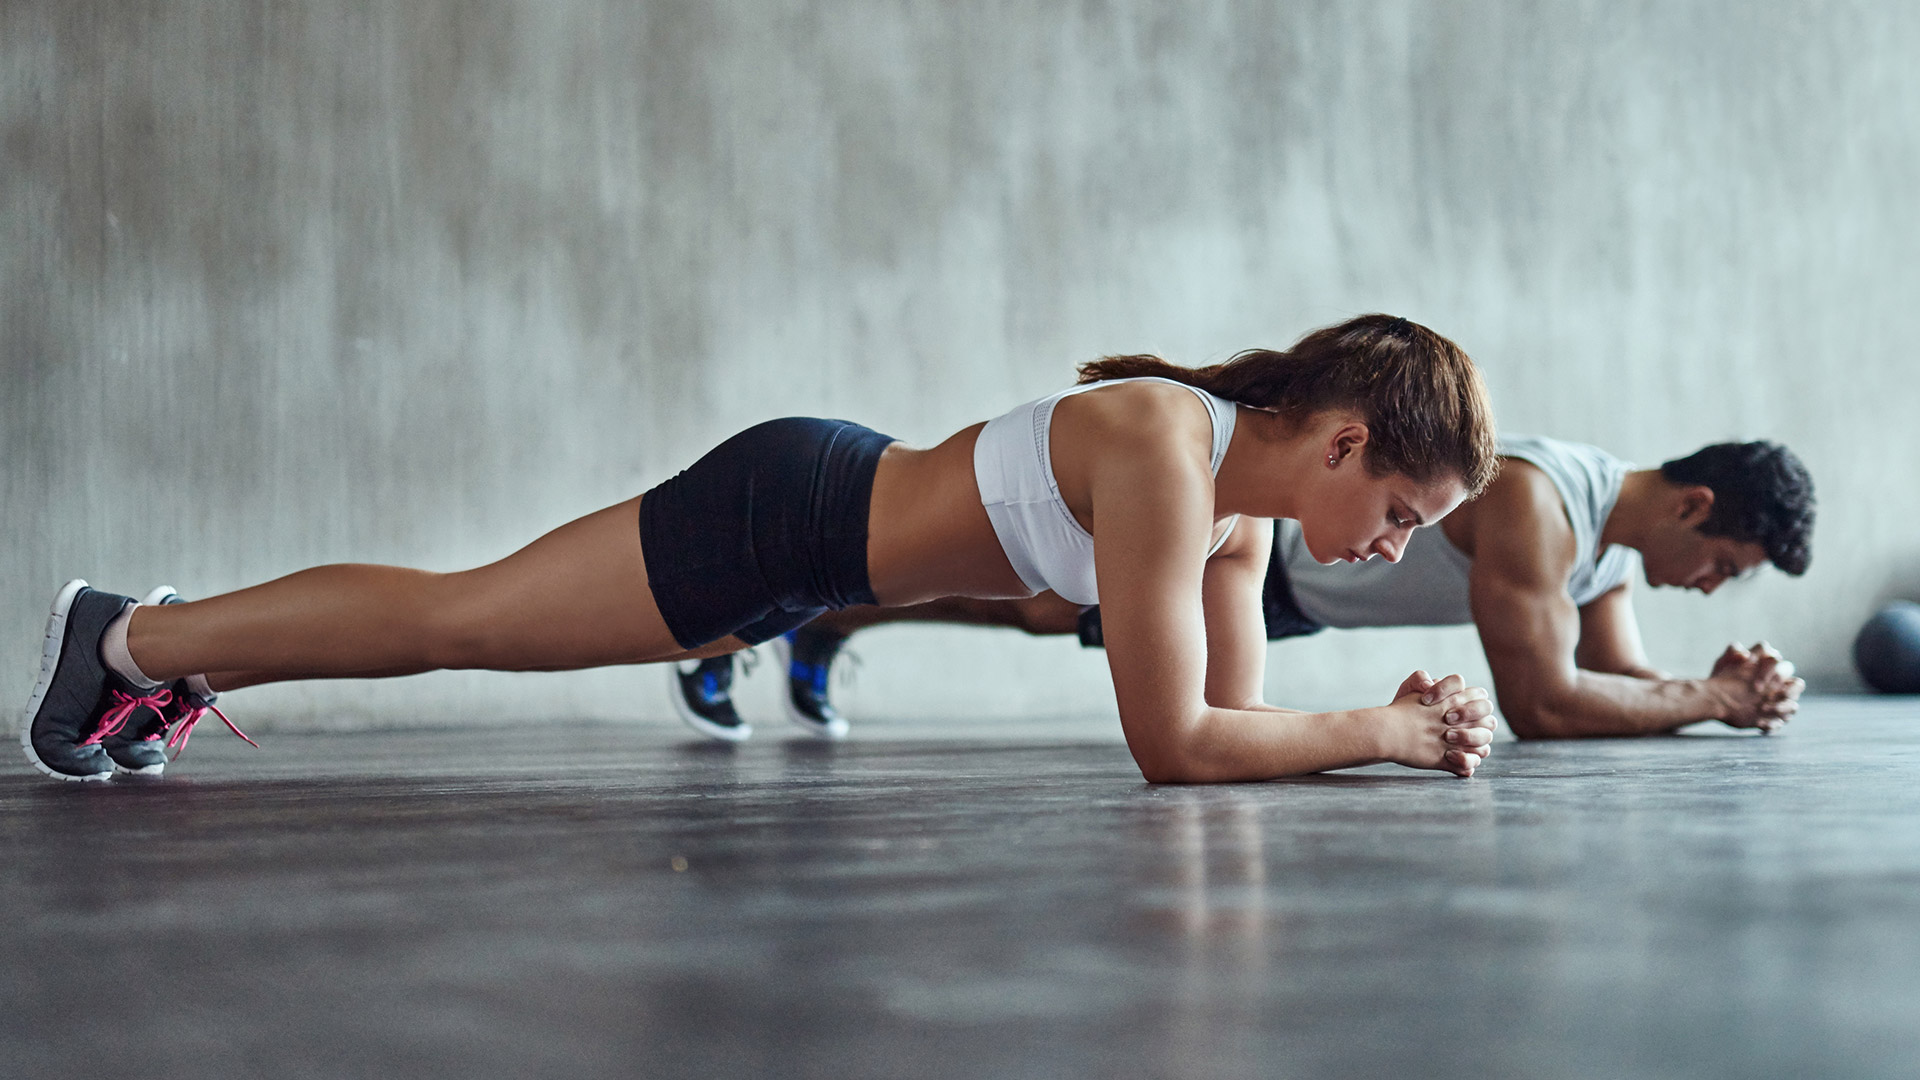 Two people perform plank exercises to increase core strength